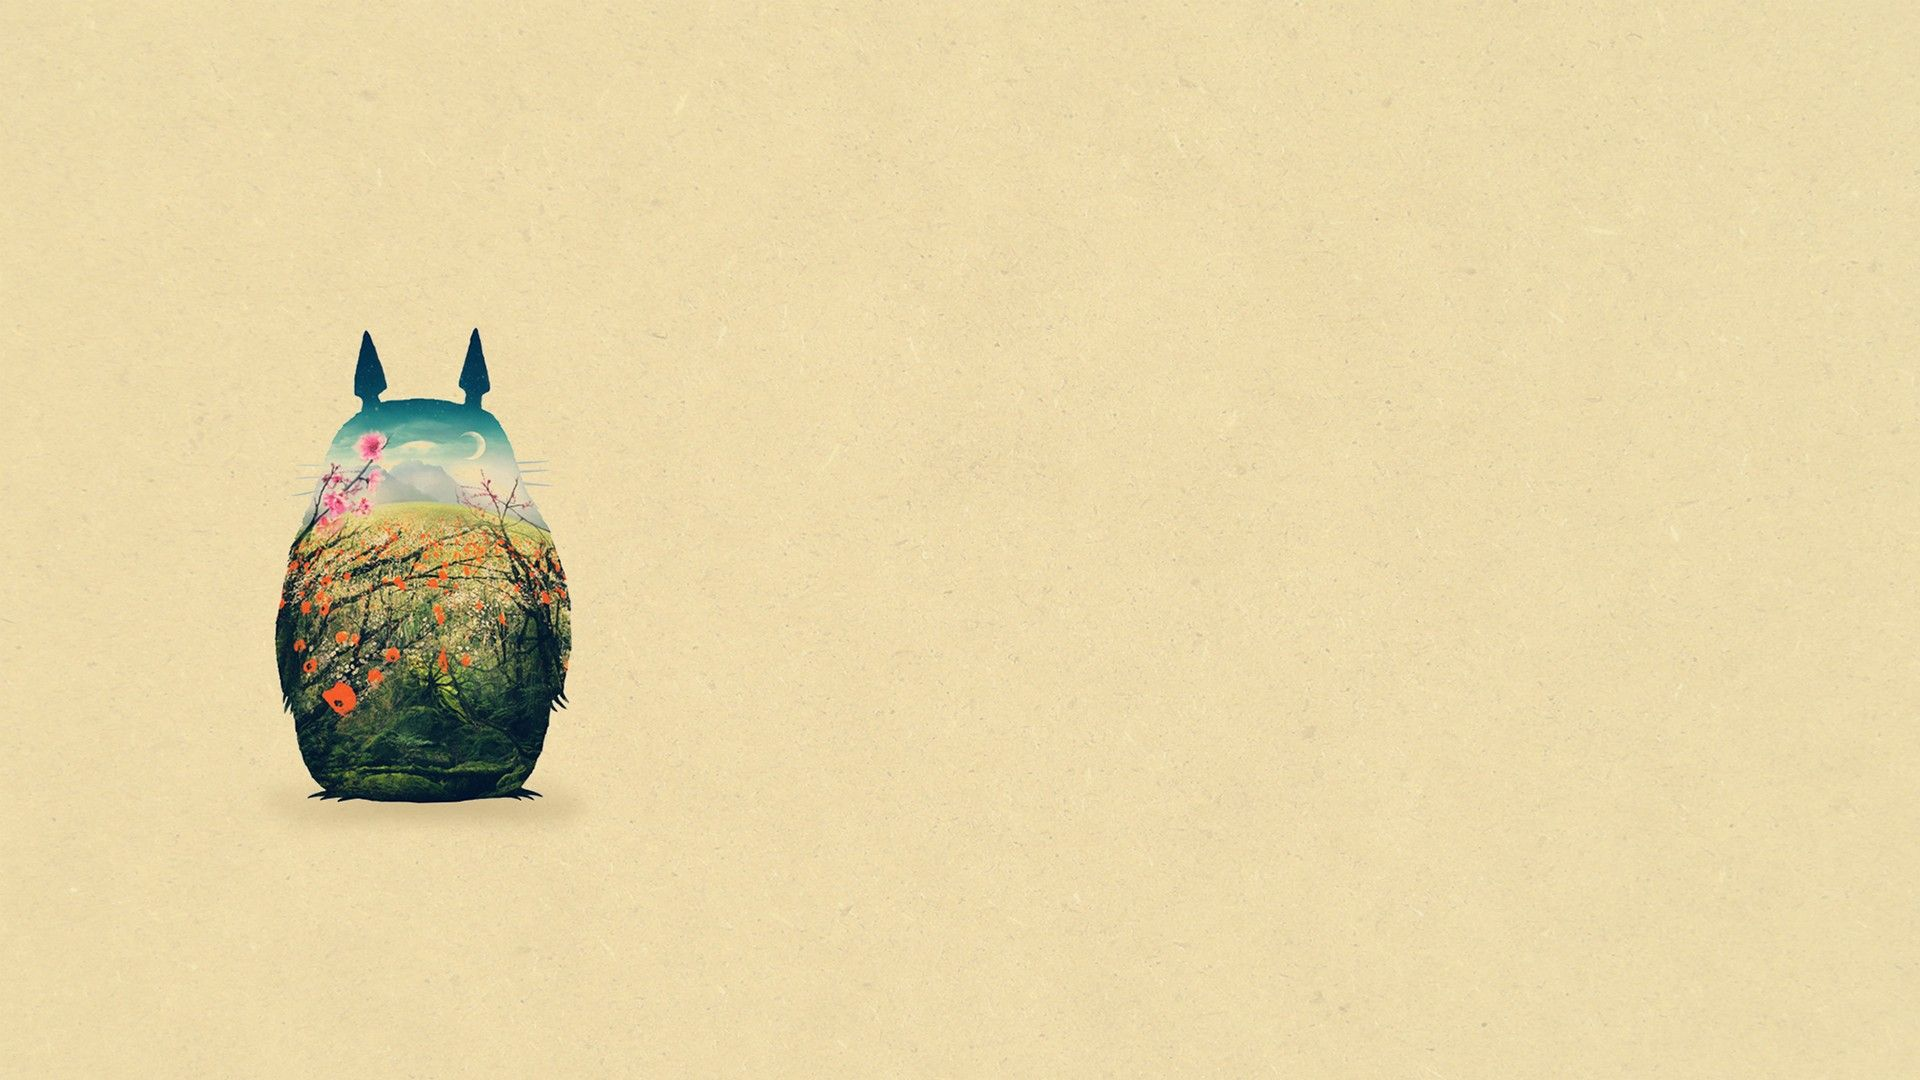 Totoro HD 1080p Wallpapers Download Totoro Pinterest